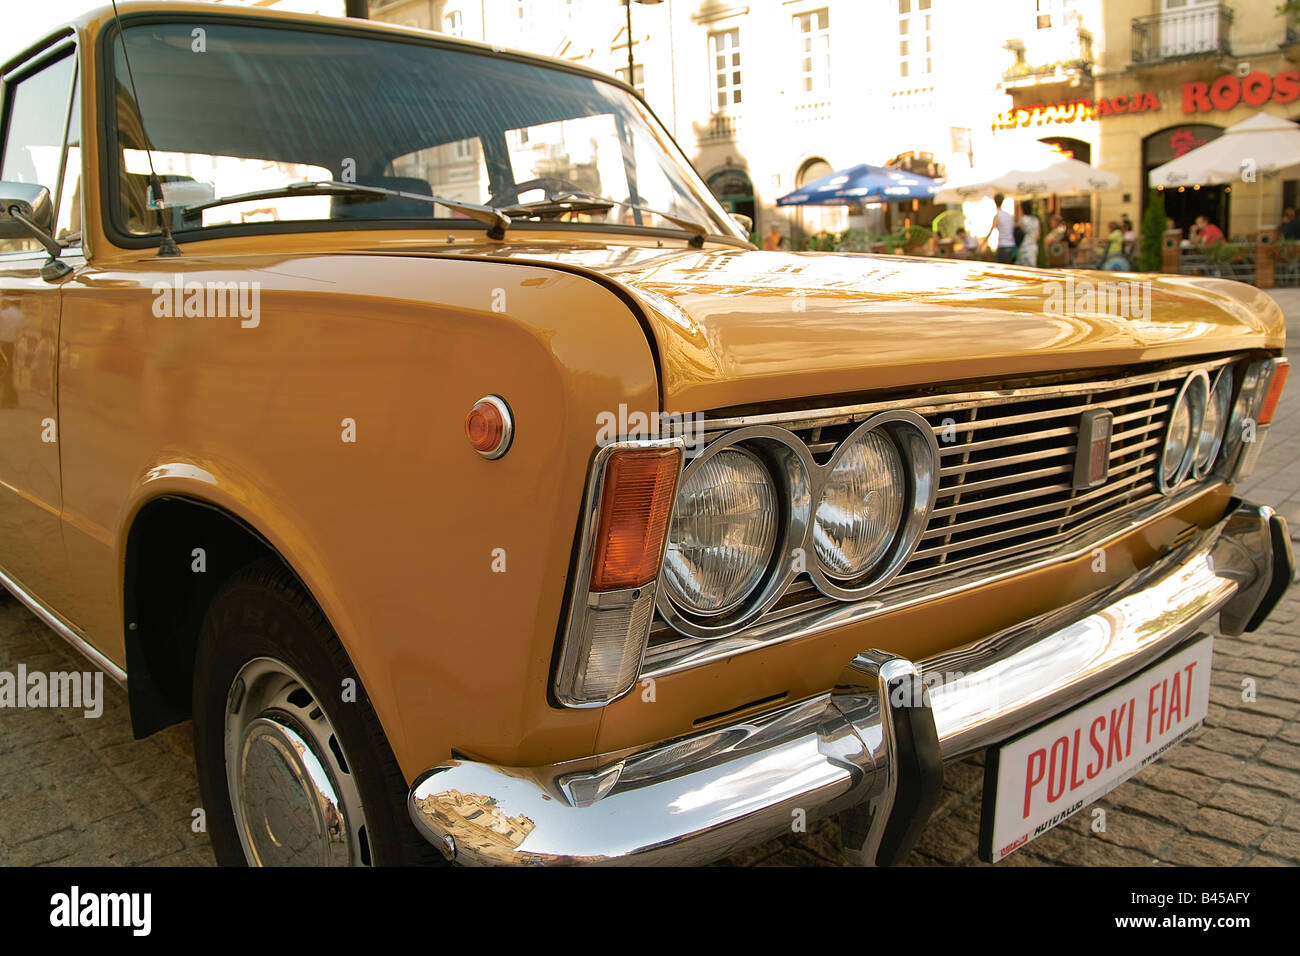 Polish Fiat 125p Licensed Fiat 125 Stock Photo Alamy